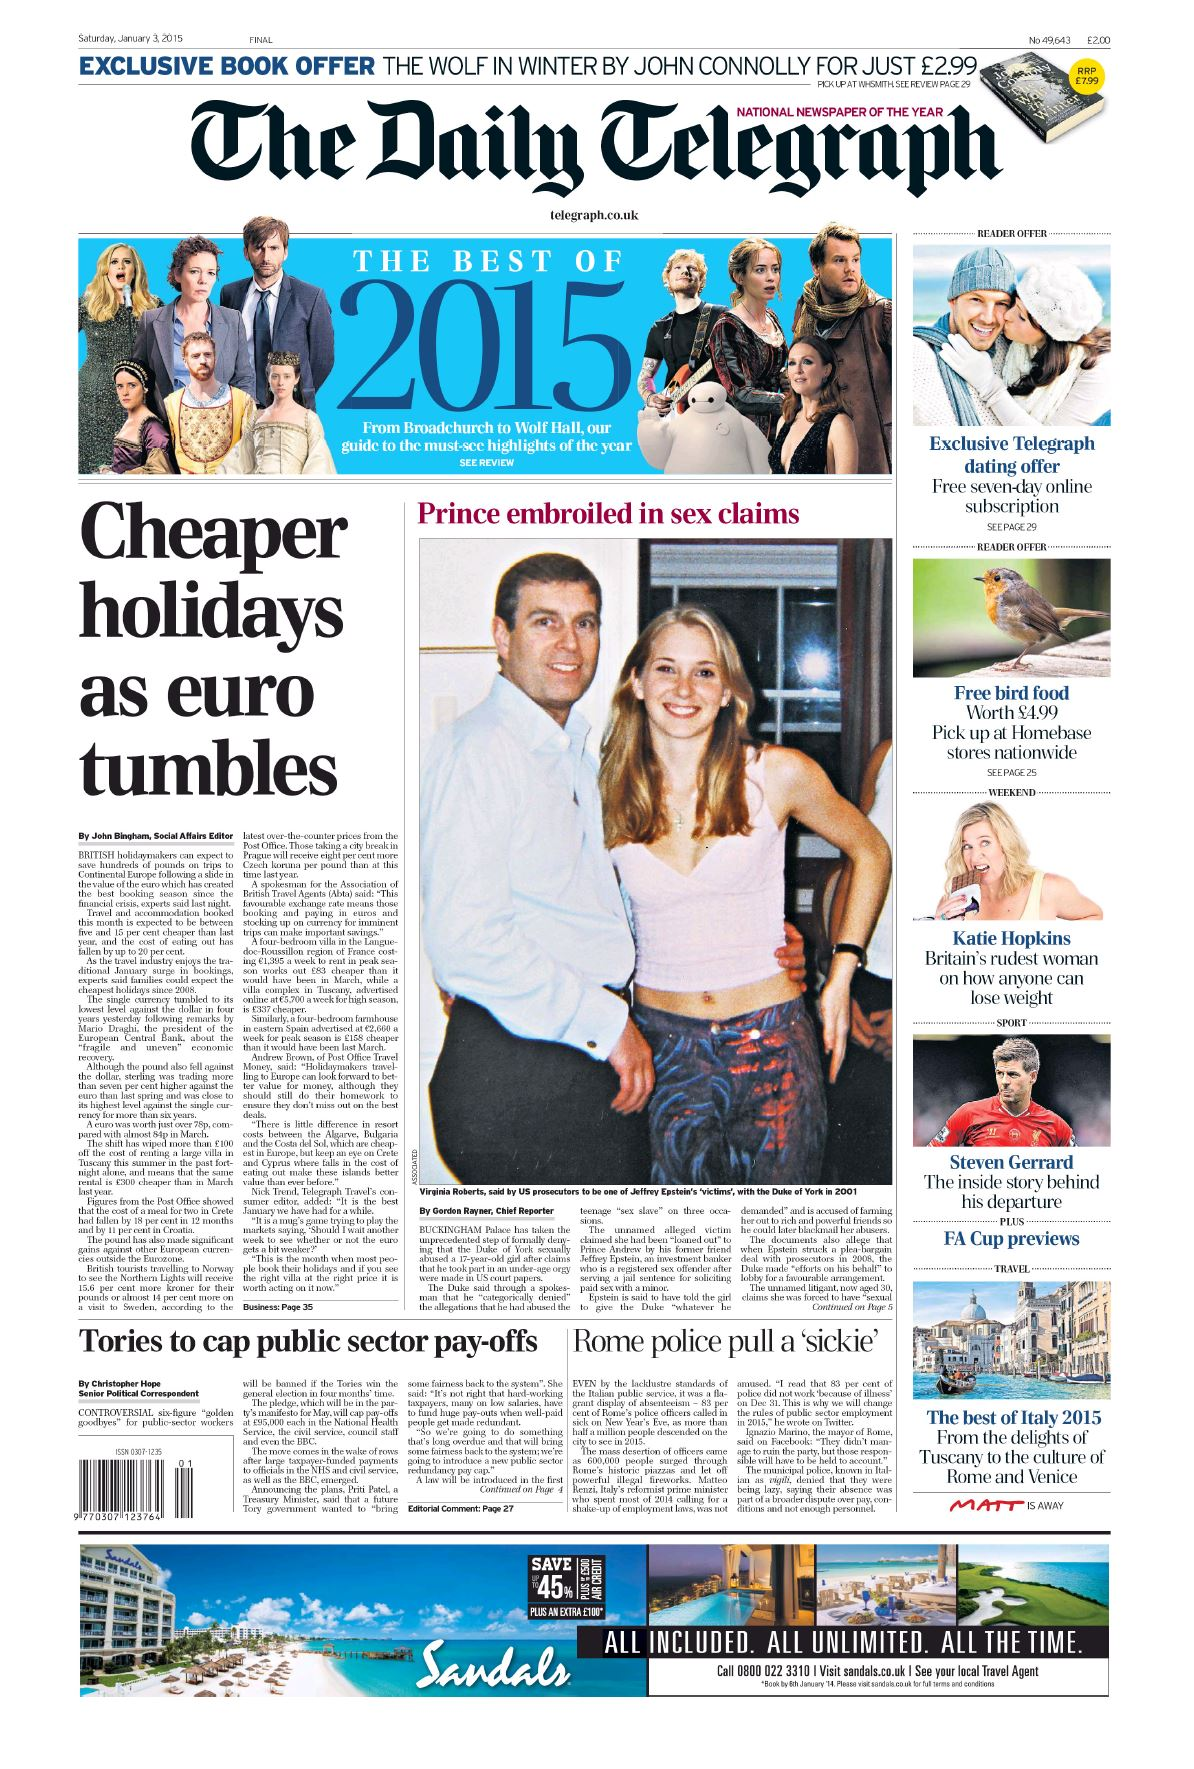 The Daily Telegraph  January 03 2015 free download